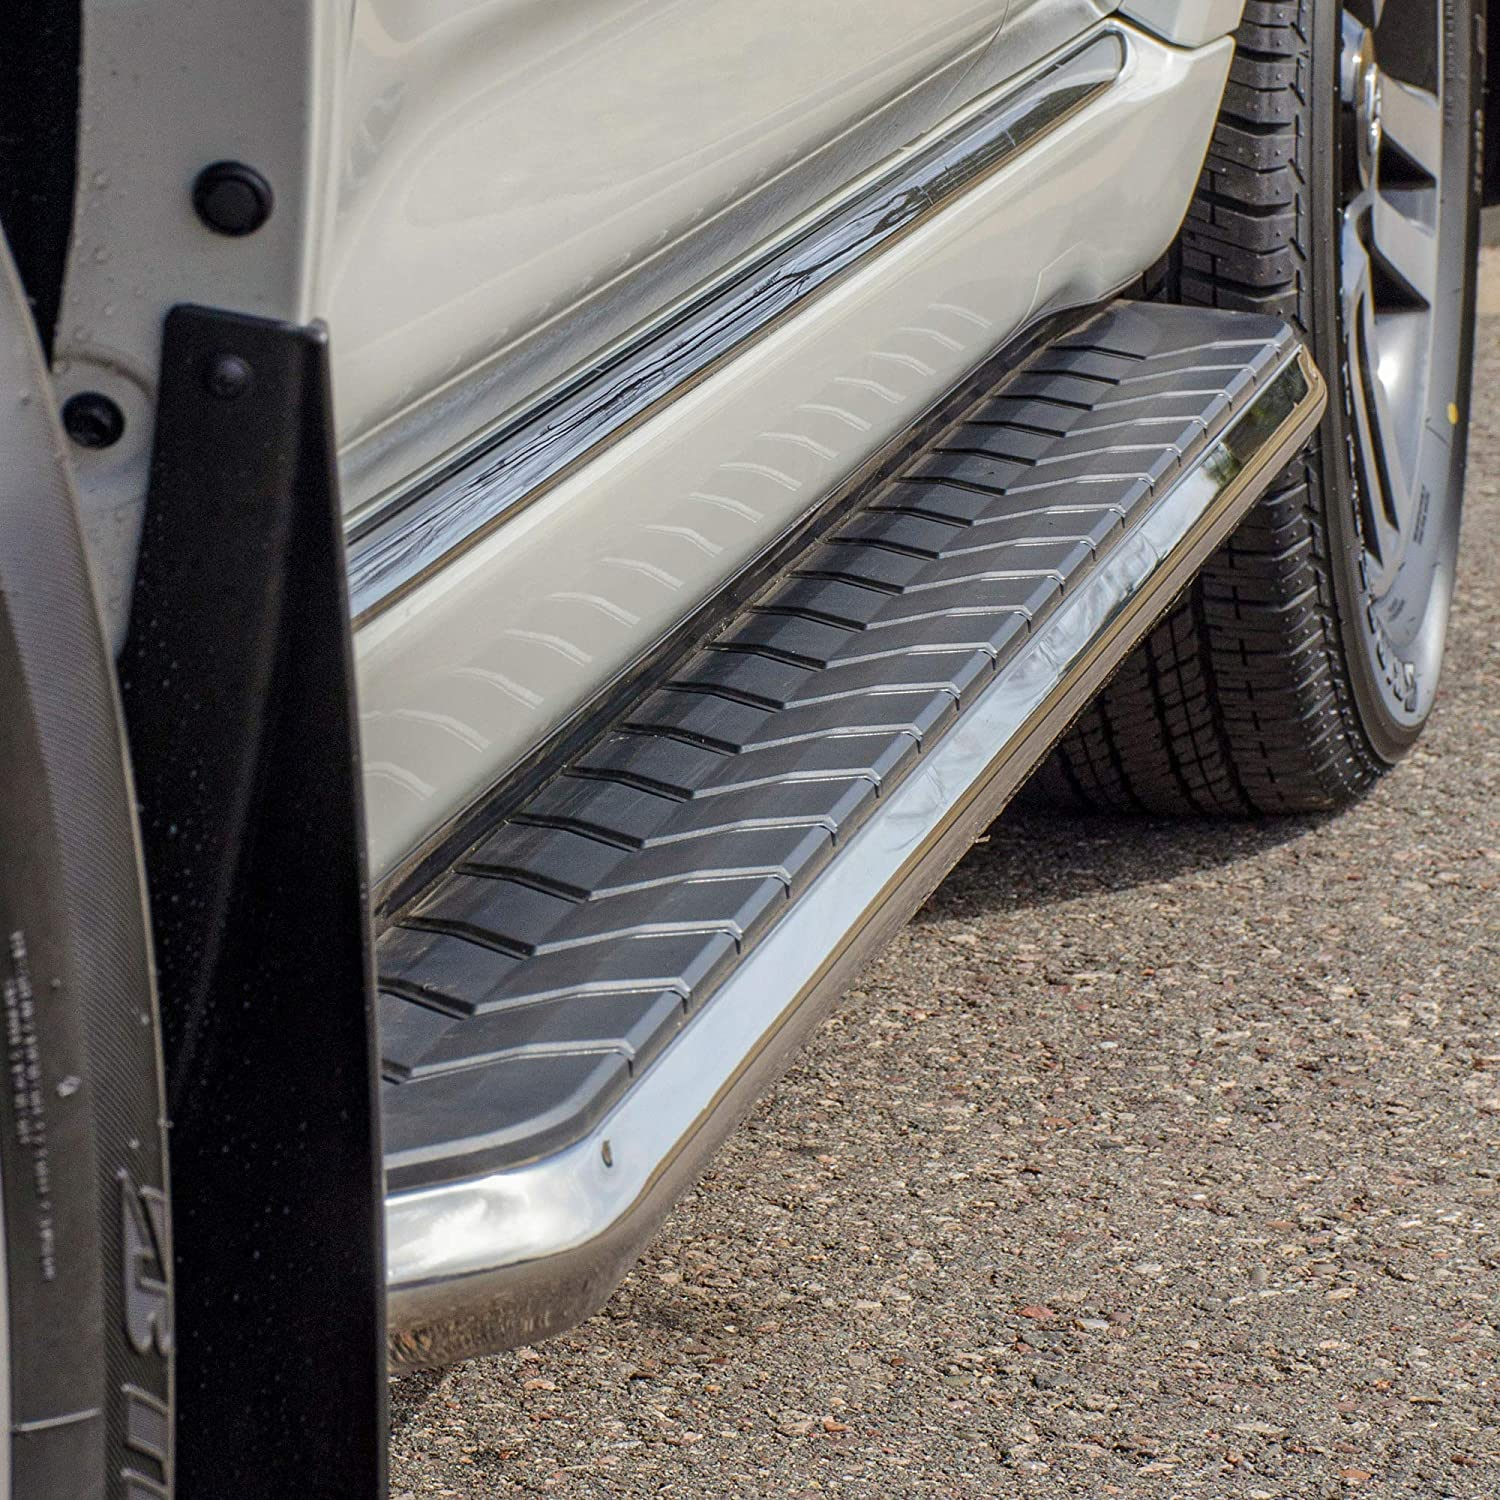 ARIES 2051010 AeroTread 70-Inch Polished Stainless Steel SUV Running Boards Select Nissan Murano